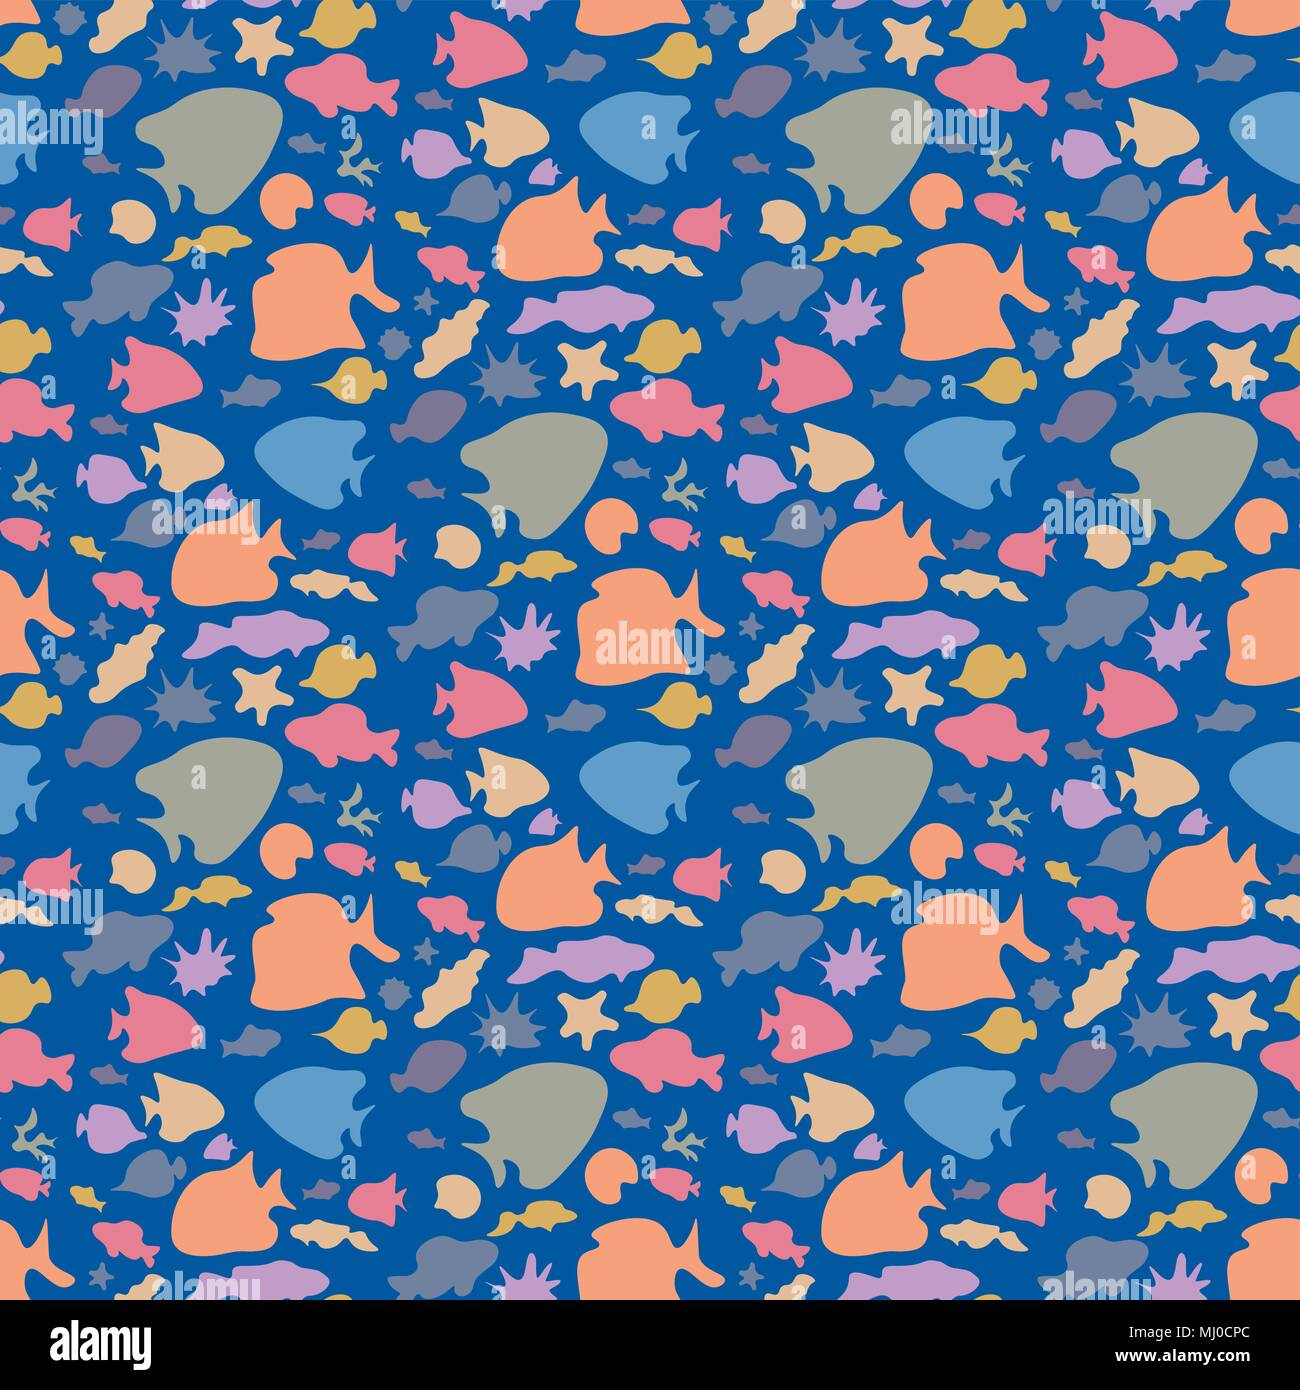 Vector Colorati Pesci Seamless Pattern Varie Brillante Mare Pesce